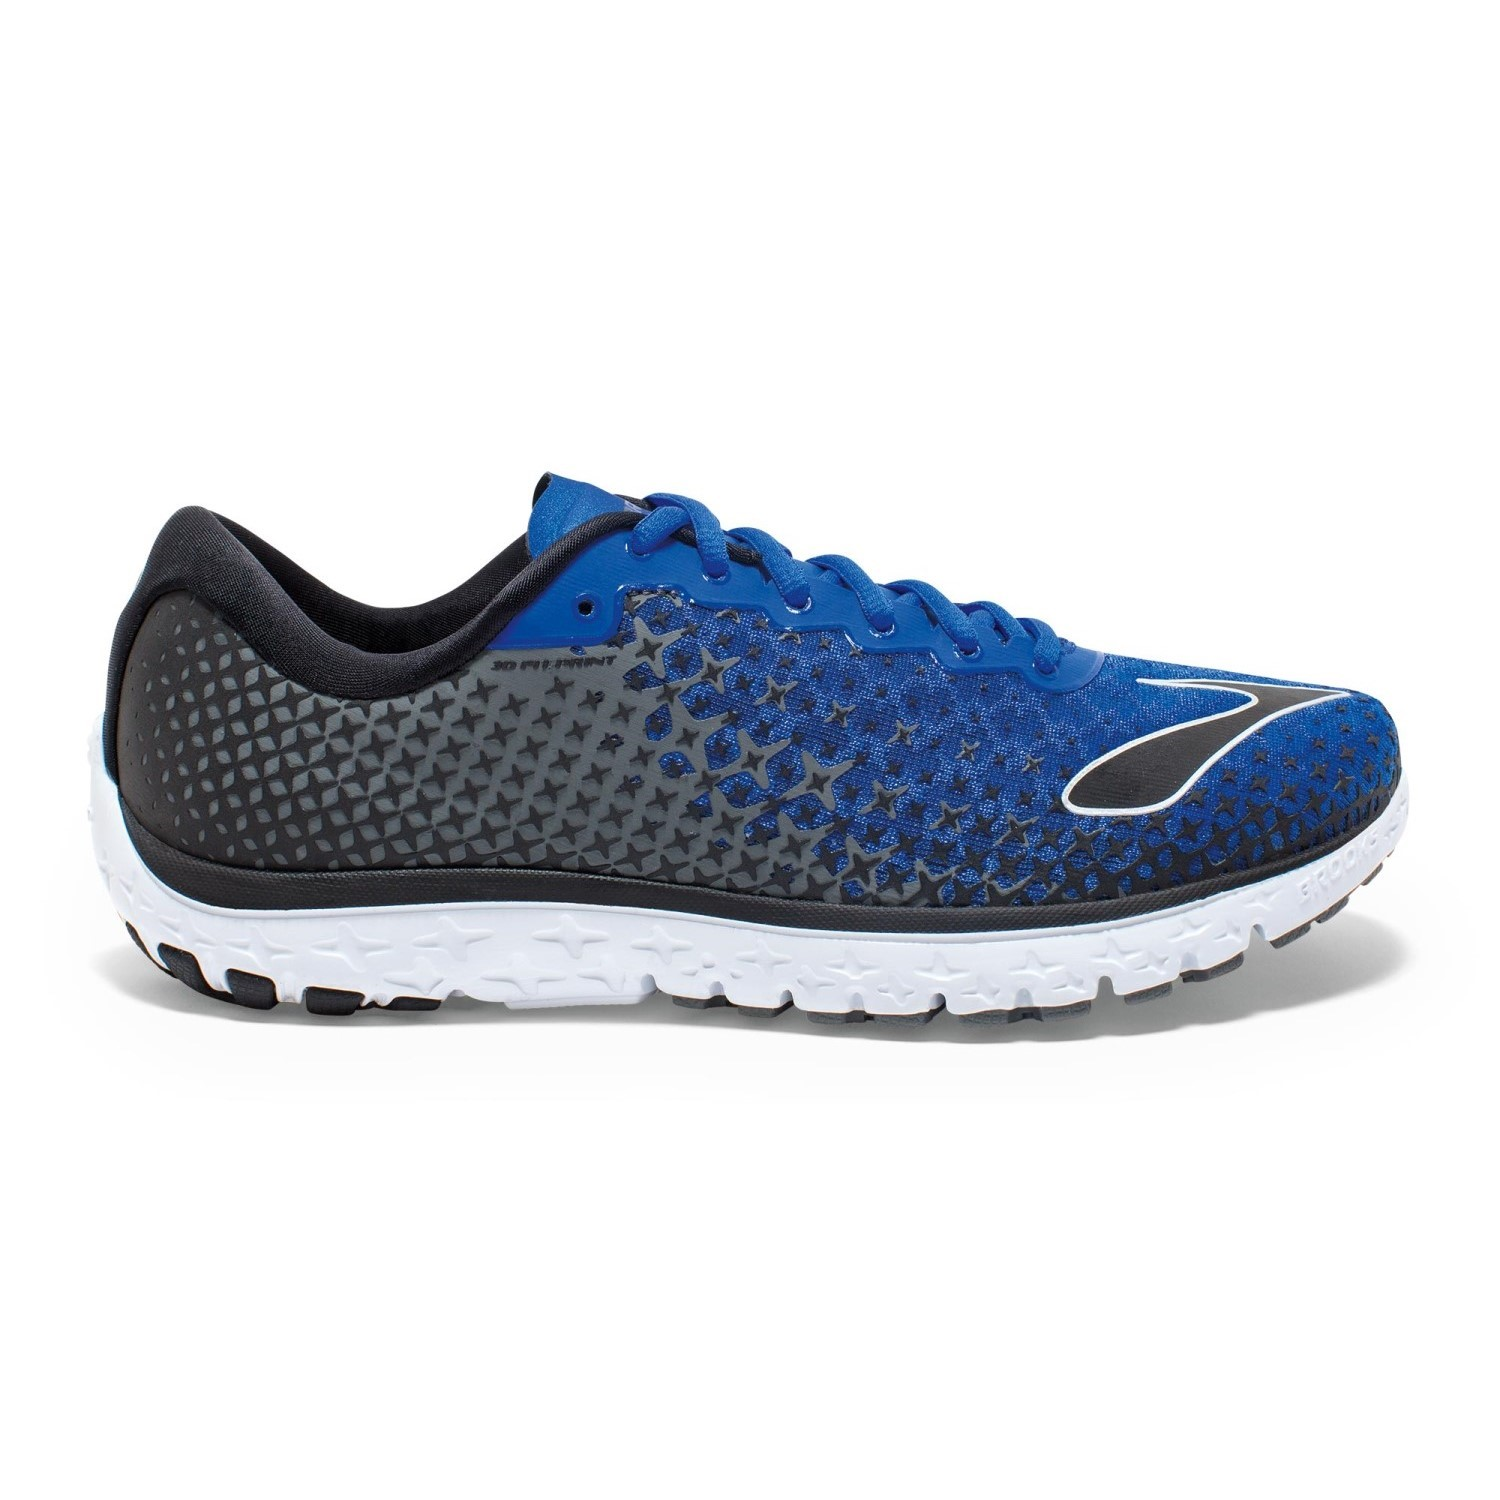 Mens E Running Shoes Canada